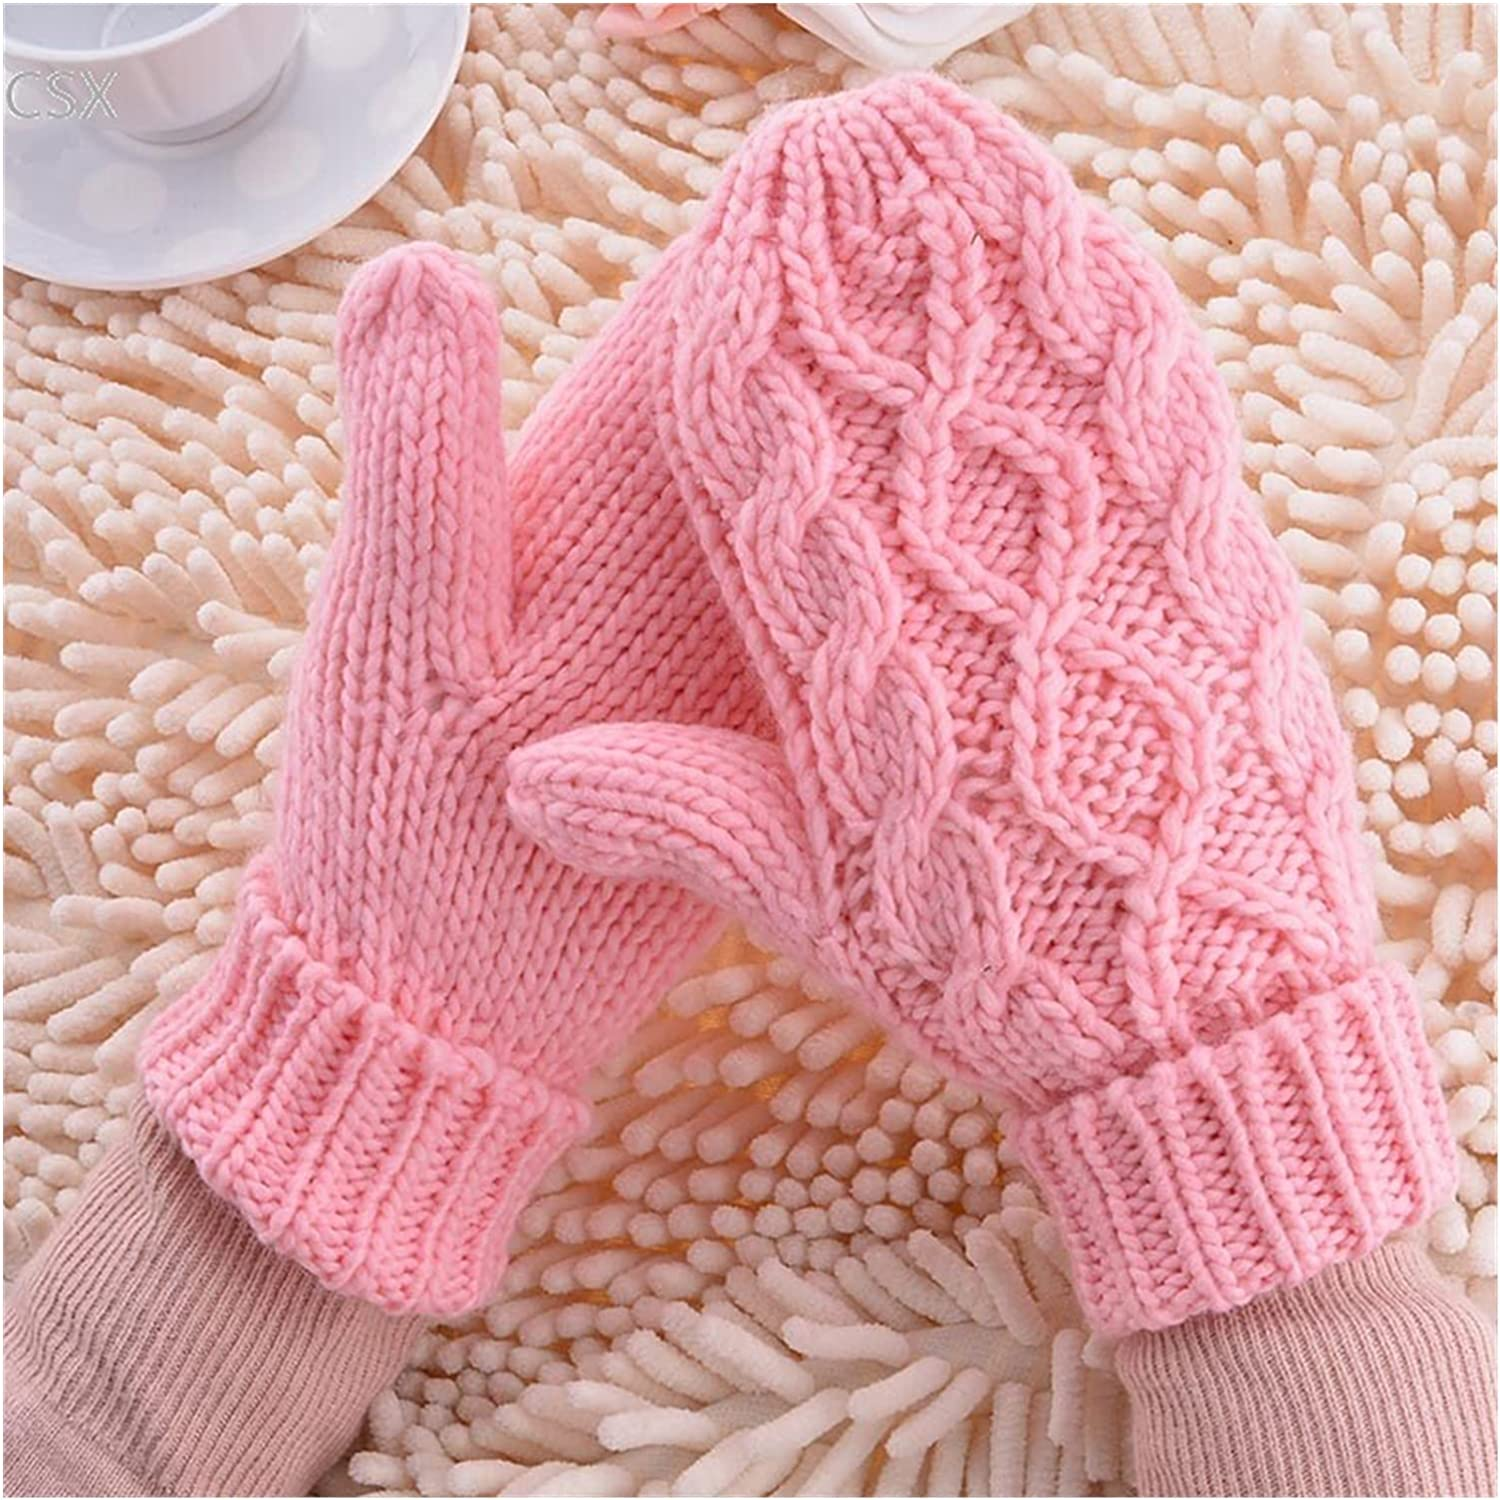 JSJJAWS Winter Gloves Warm Winter Gloves Women Mittens 8 Color Woman Ladies Lovely Knitted Gloves Girls Gift (Color : Red)